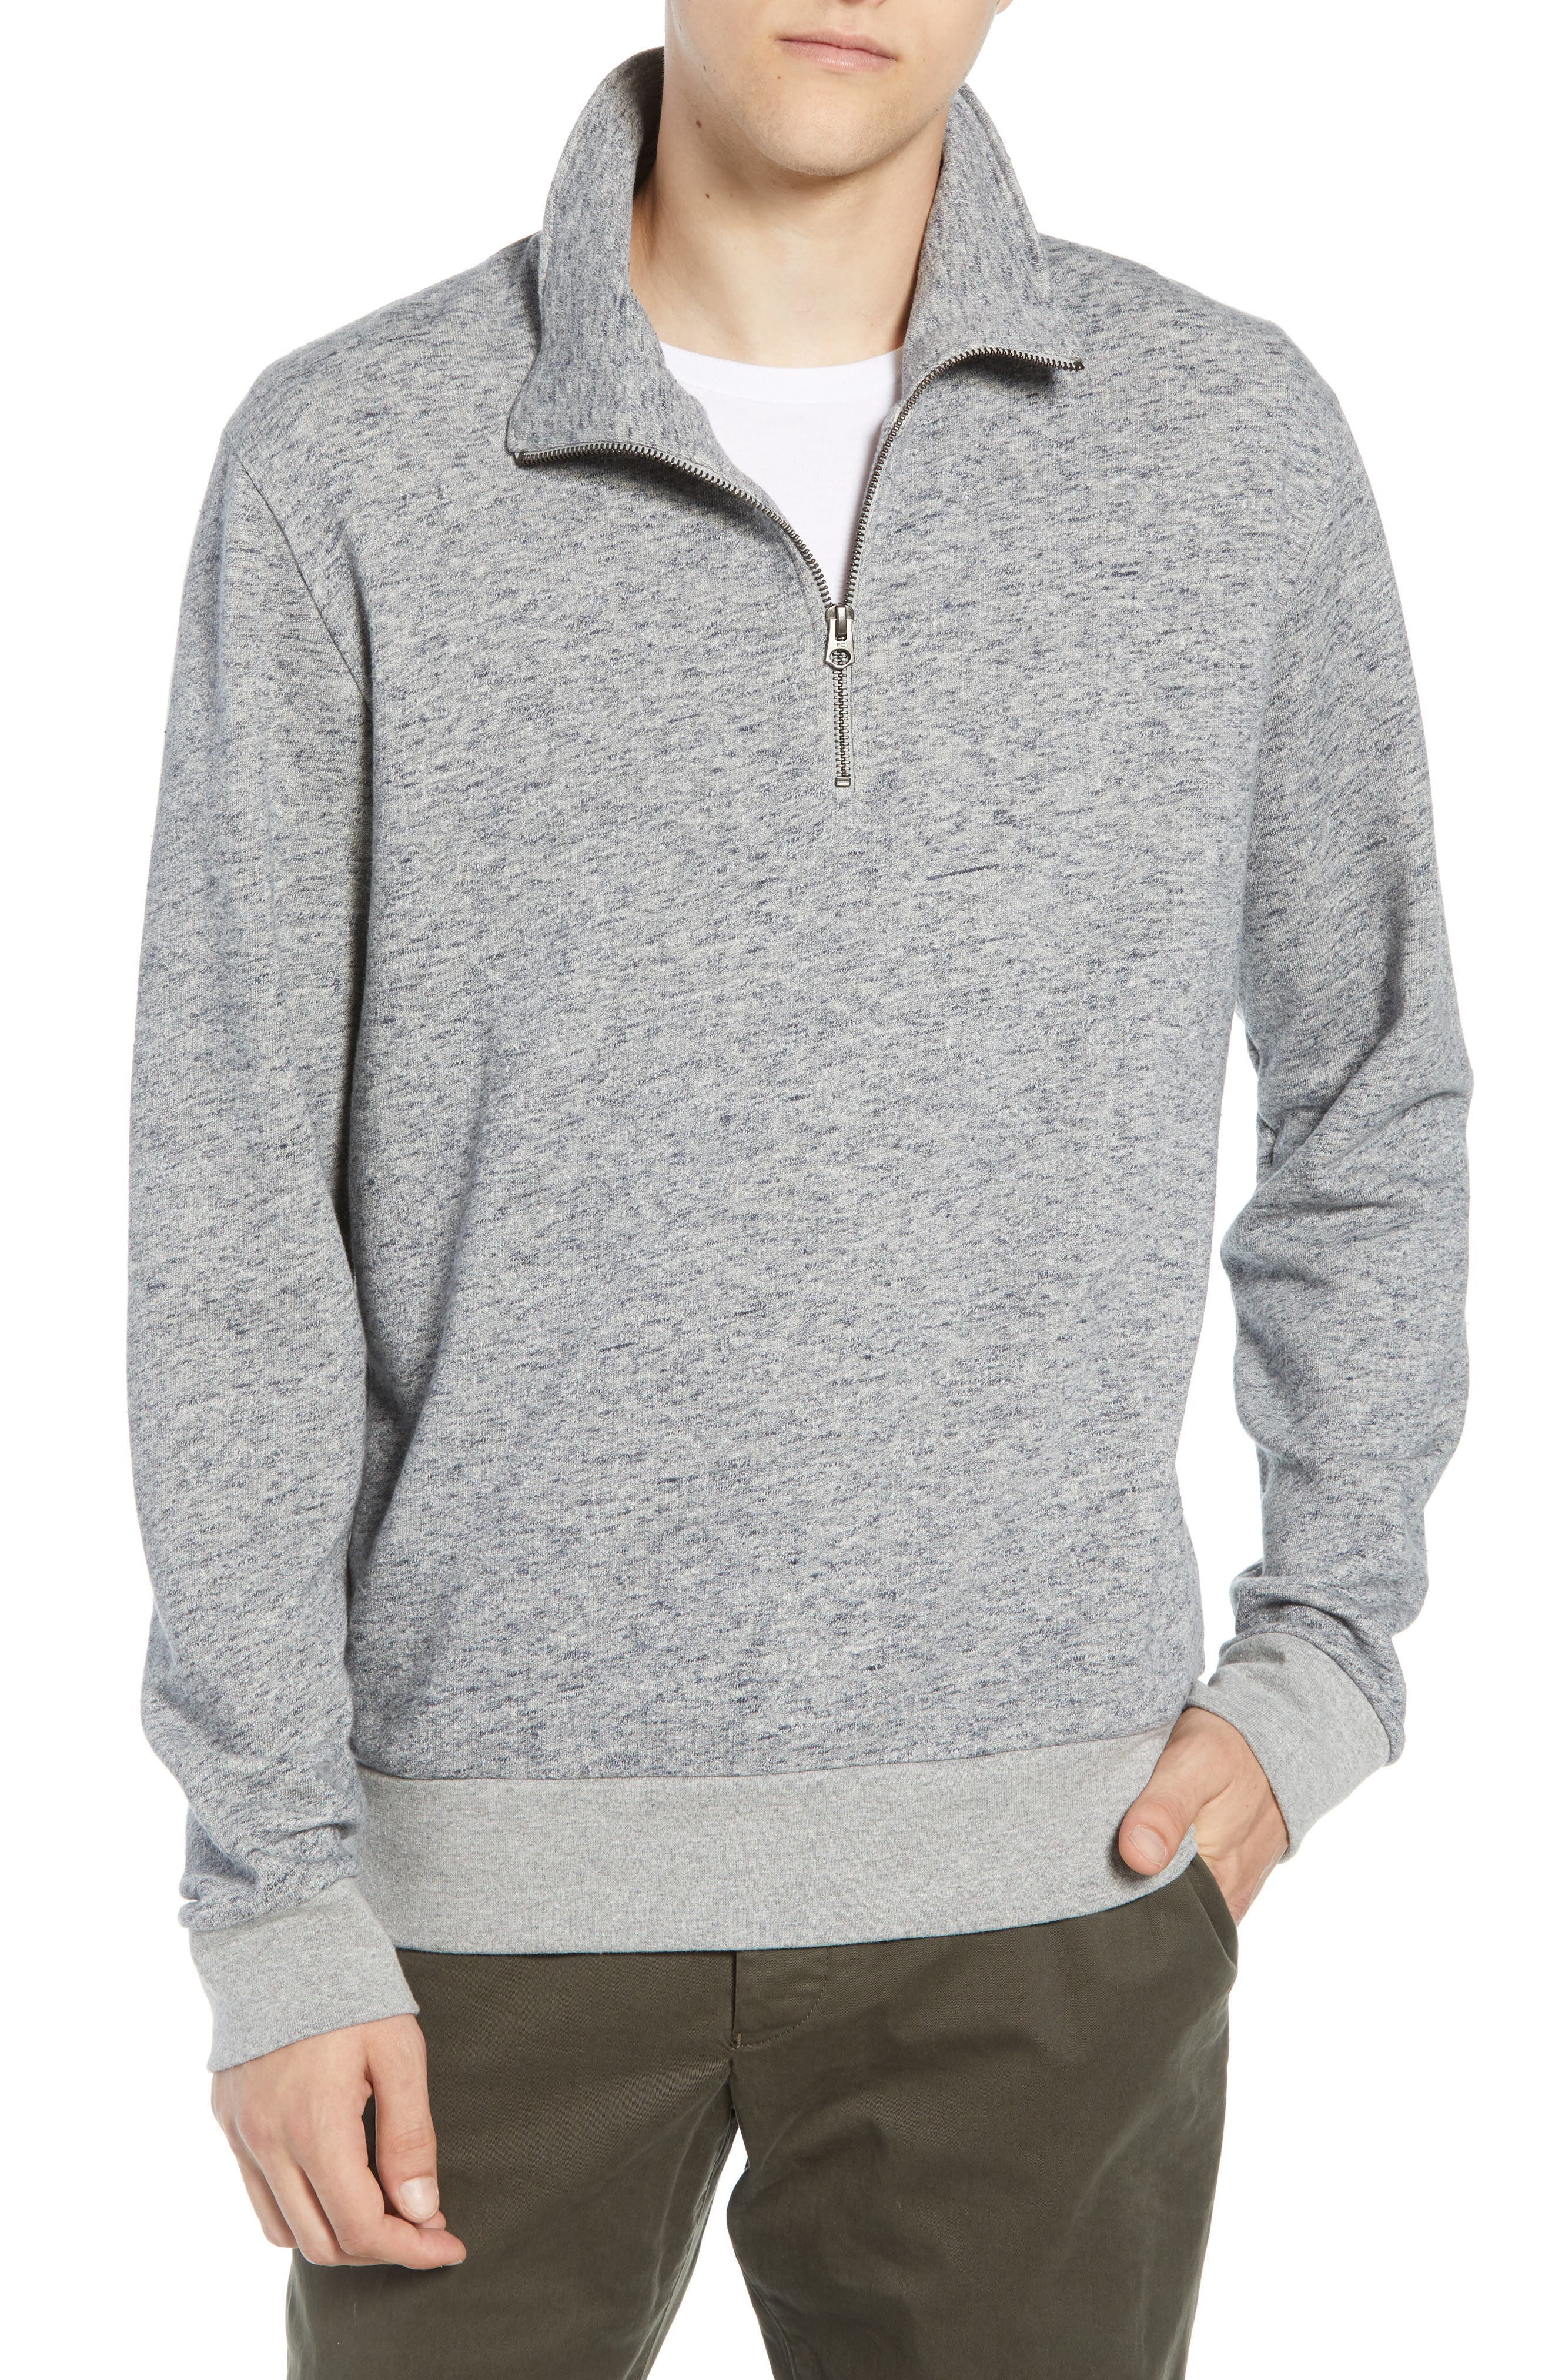 Winning Quarter Zip Regular Fit Sweatshirt,                         Main,                         color, GREY MOULINE